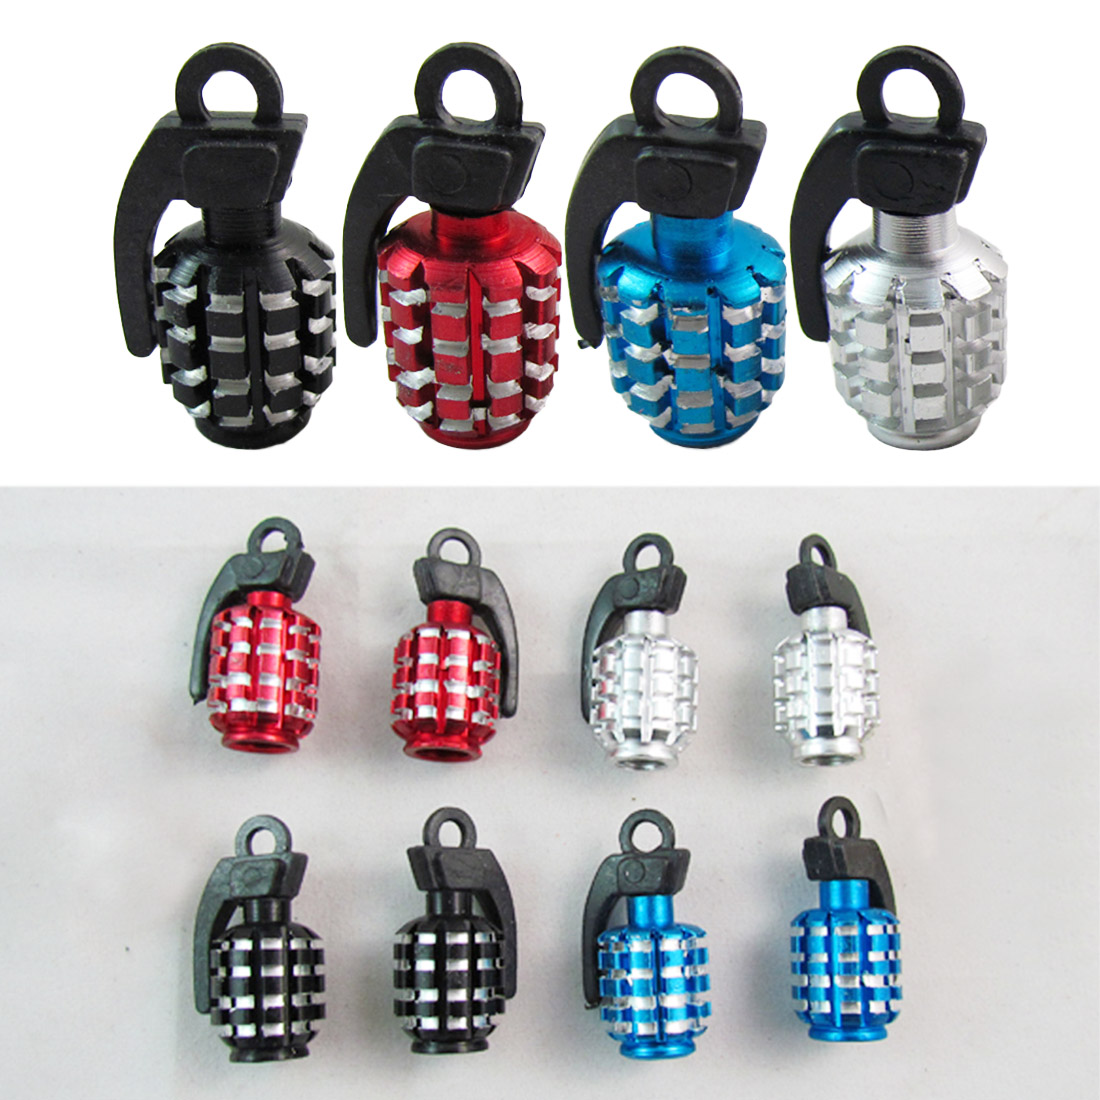 4pcs Funny Grenades Theftproof Aluminum Bicycle Car Wheel Tires Valves Tyre Stem Air Caps Airtight Cover Hot Selling